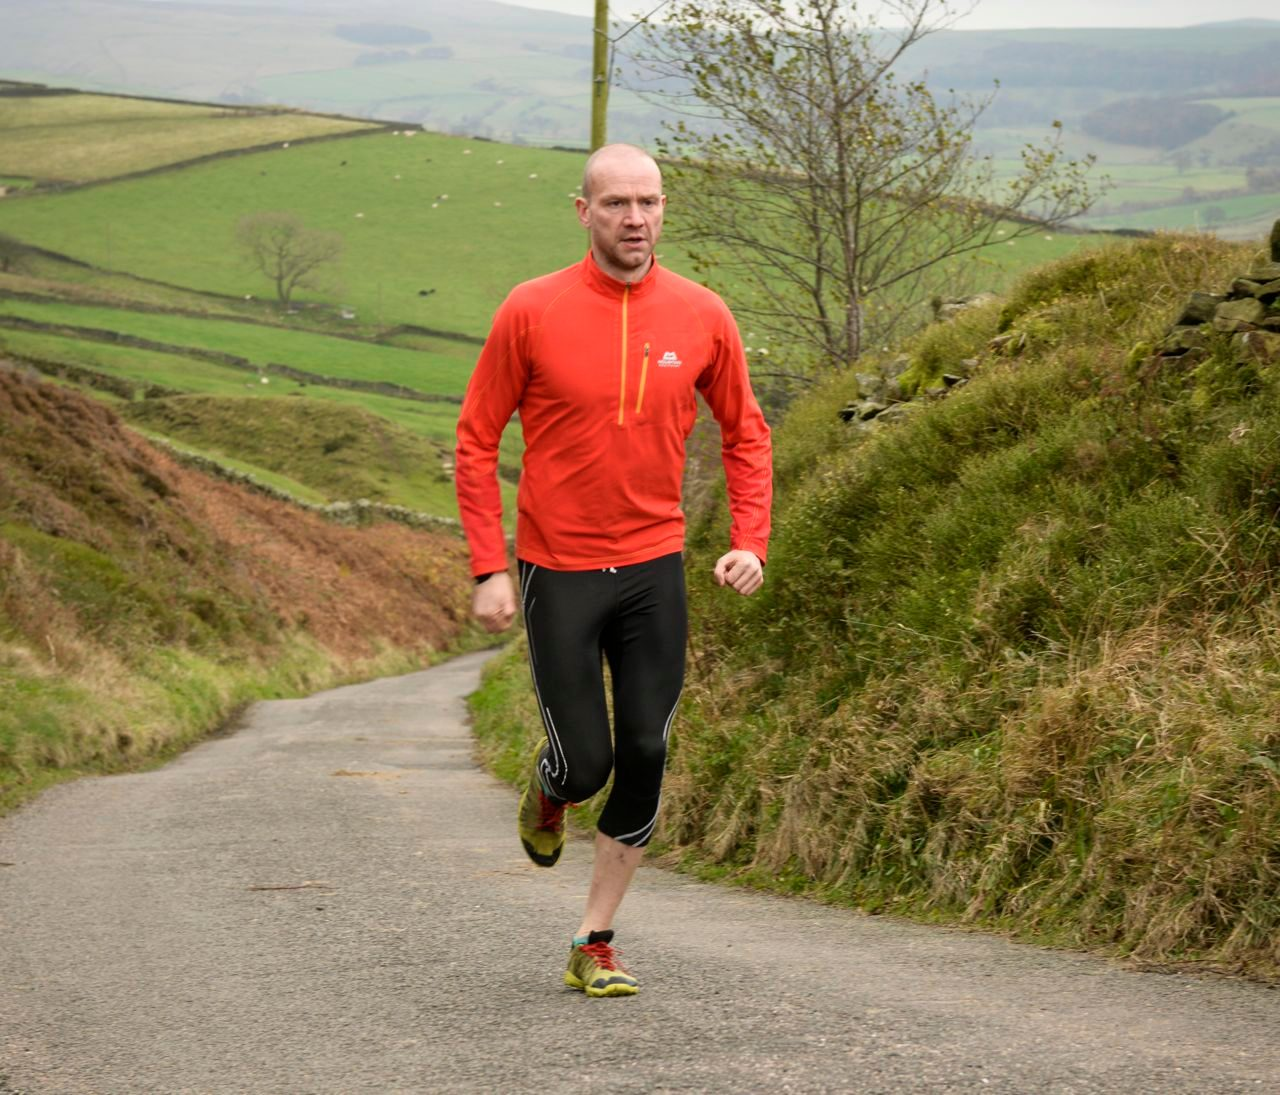 Nik Cook in hill running